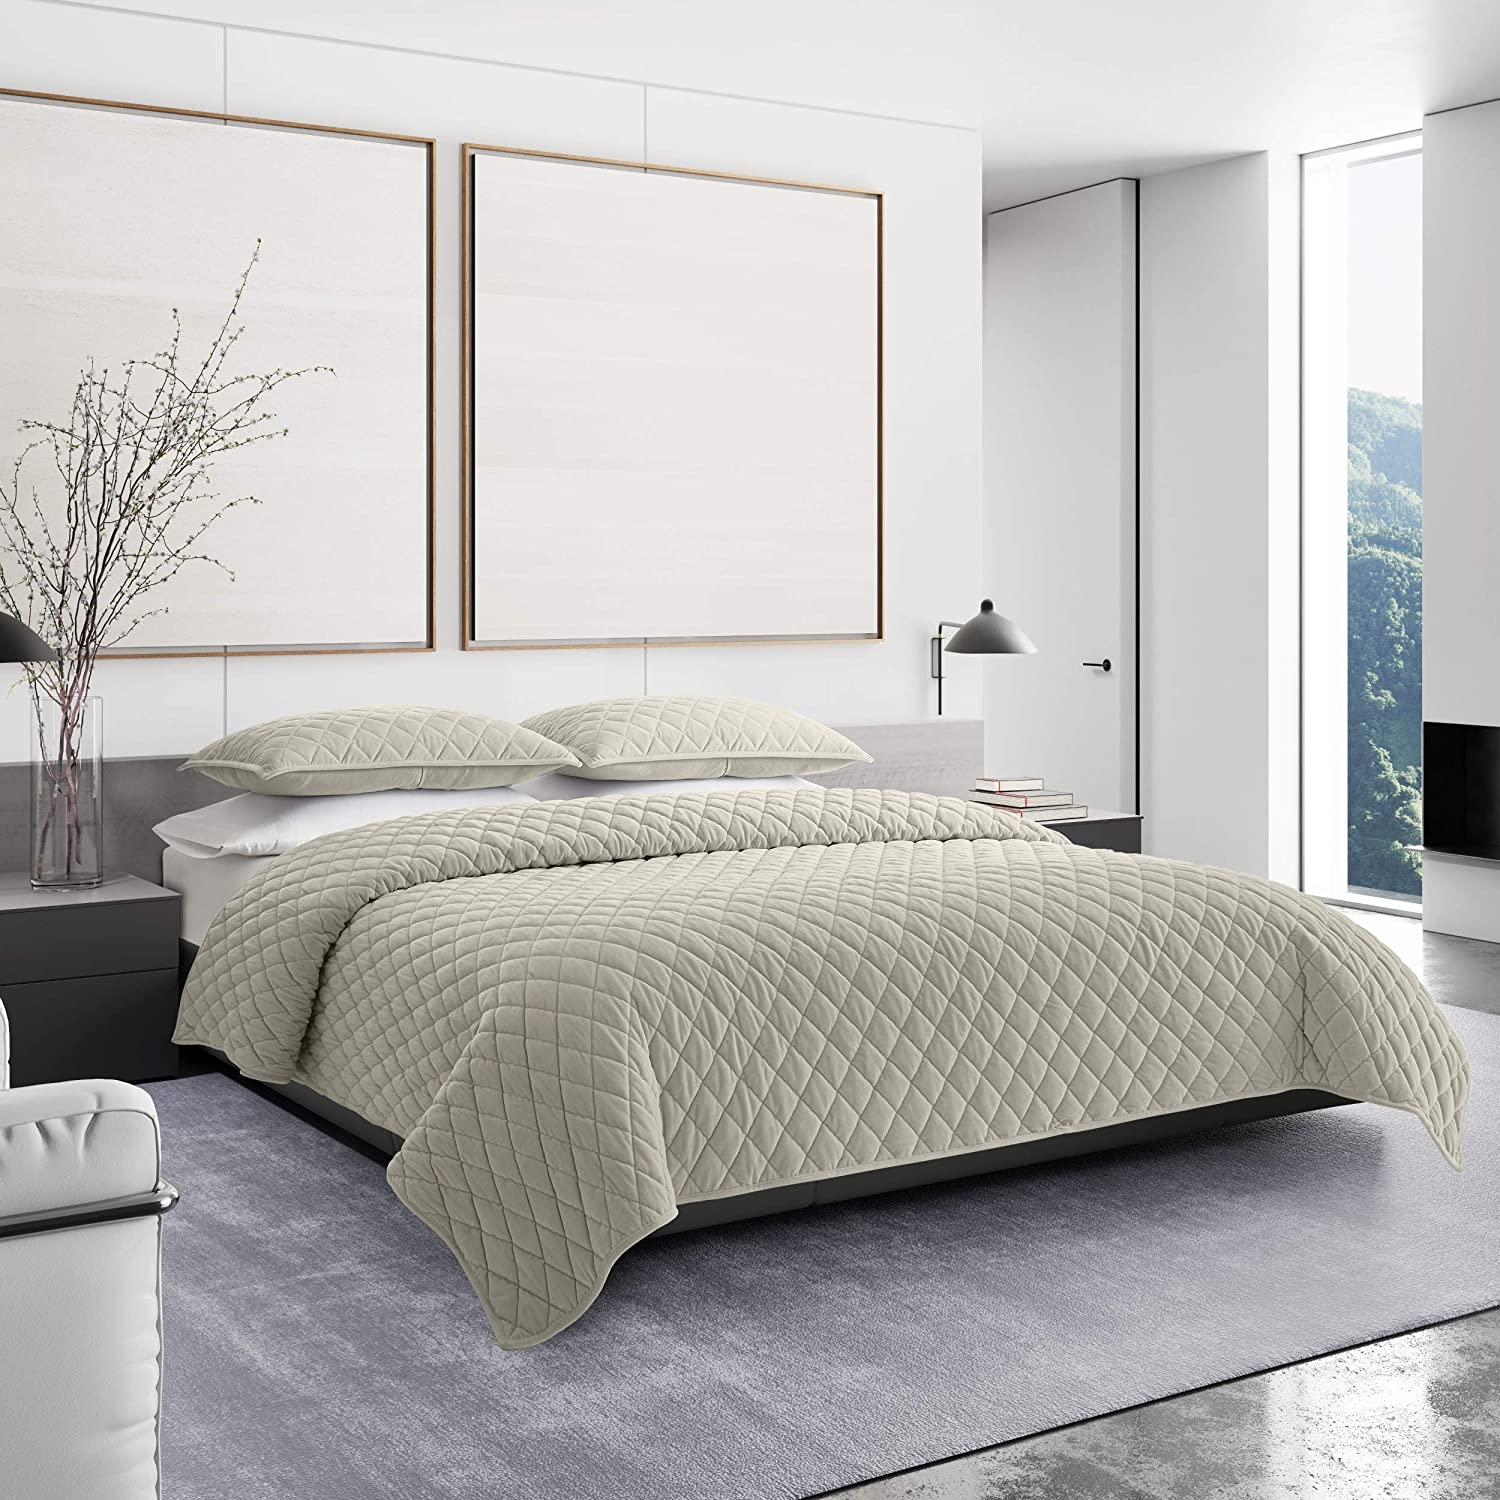 Vera Wang | Diamond Velvet Collection | Ultra Soft and Cozy Quilt Bedspread, Breathable and Lightweight 3-Piece Bedding Set, Modern Design for Bedroom Décor, King, Natural